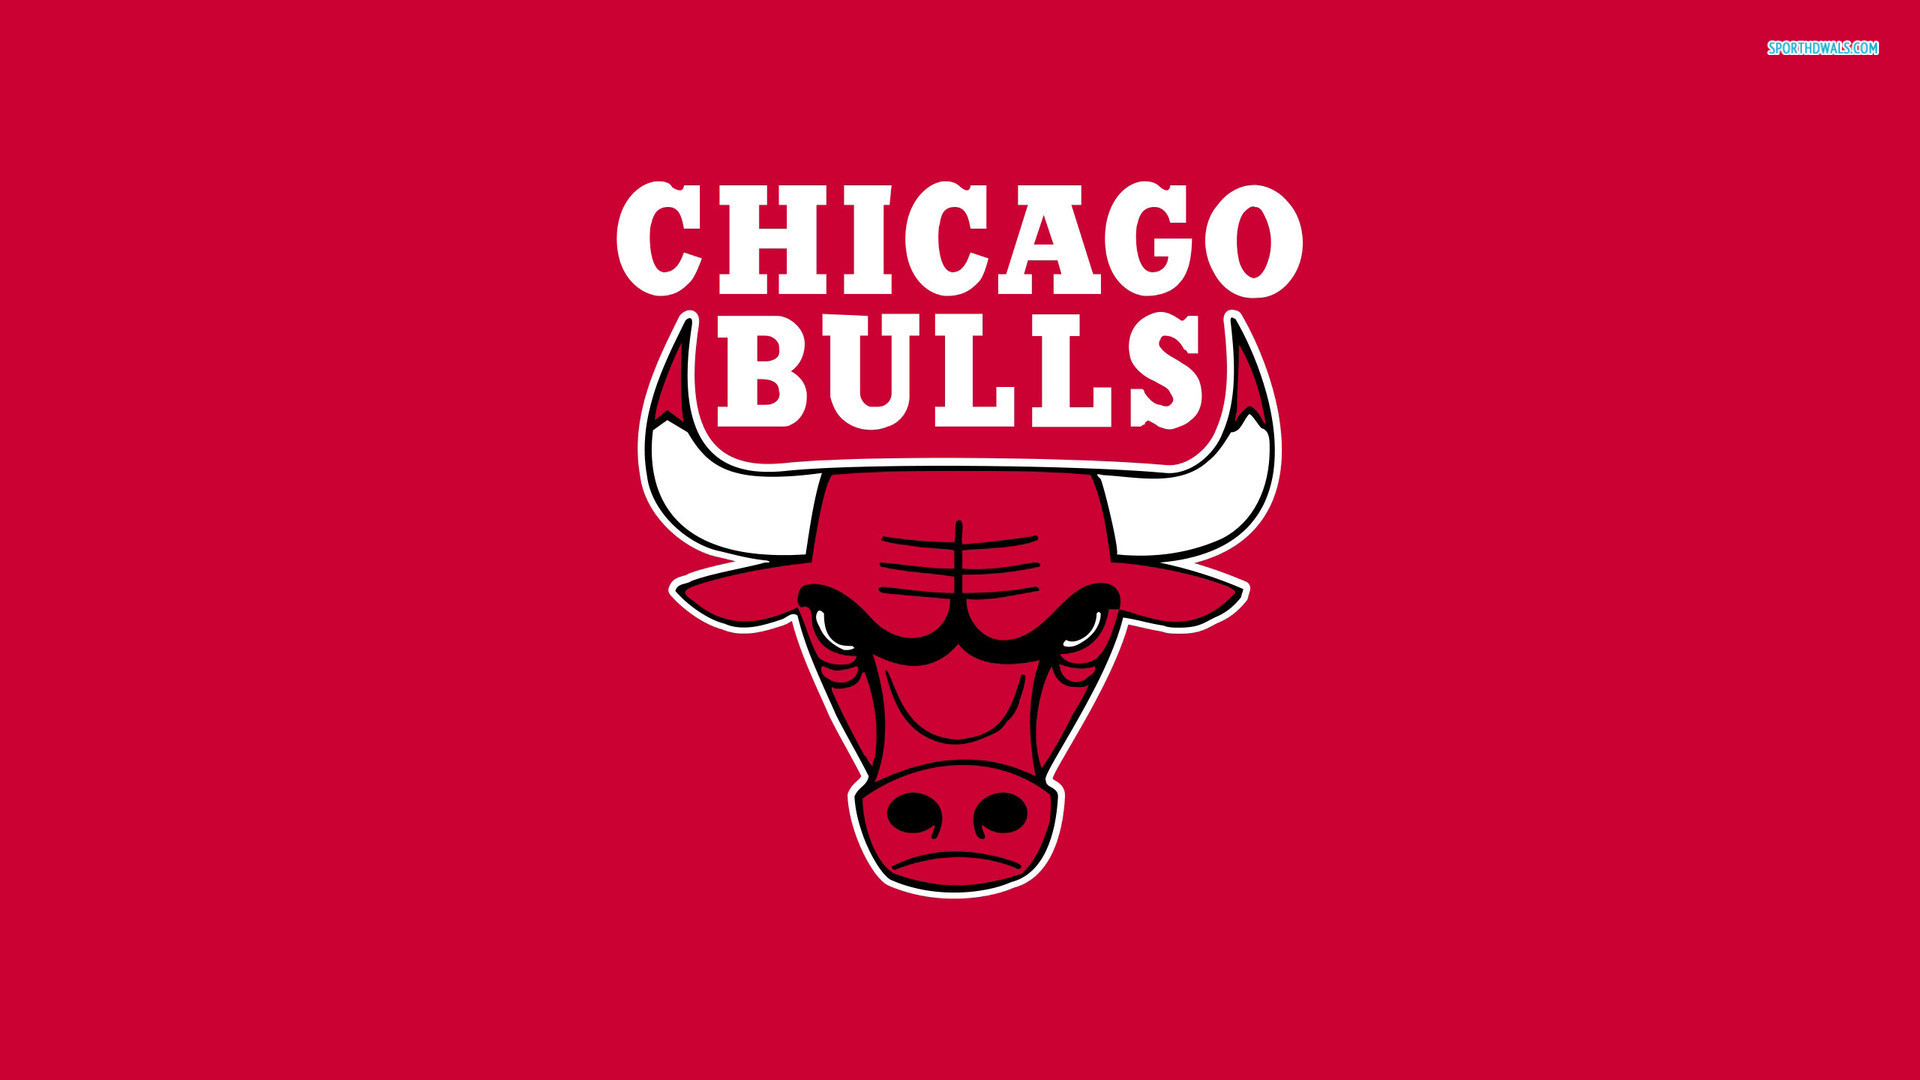 1920x1080 chicago bulls wallpapers HD